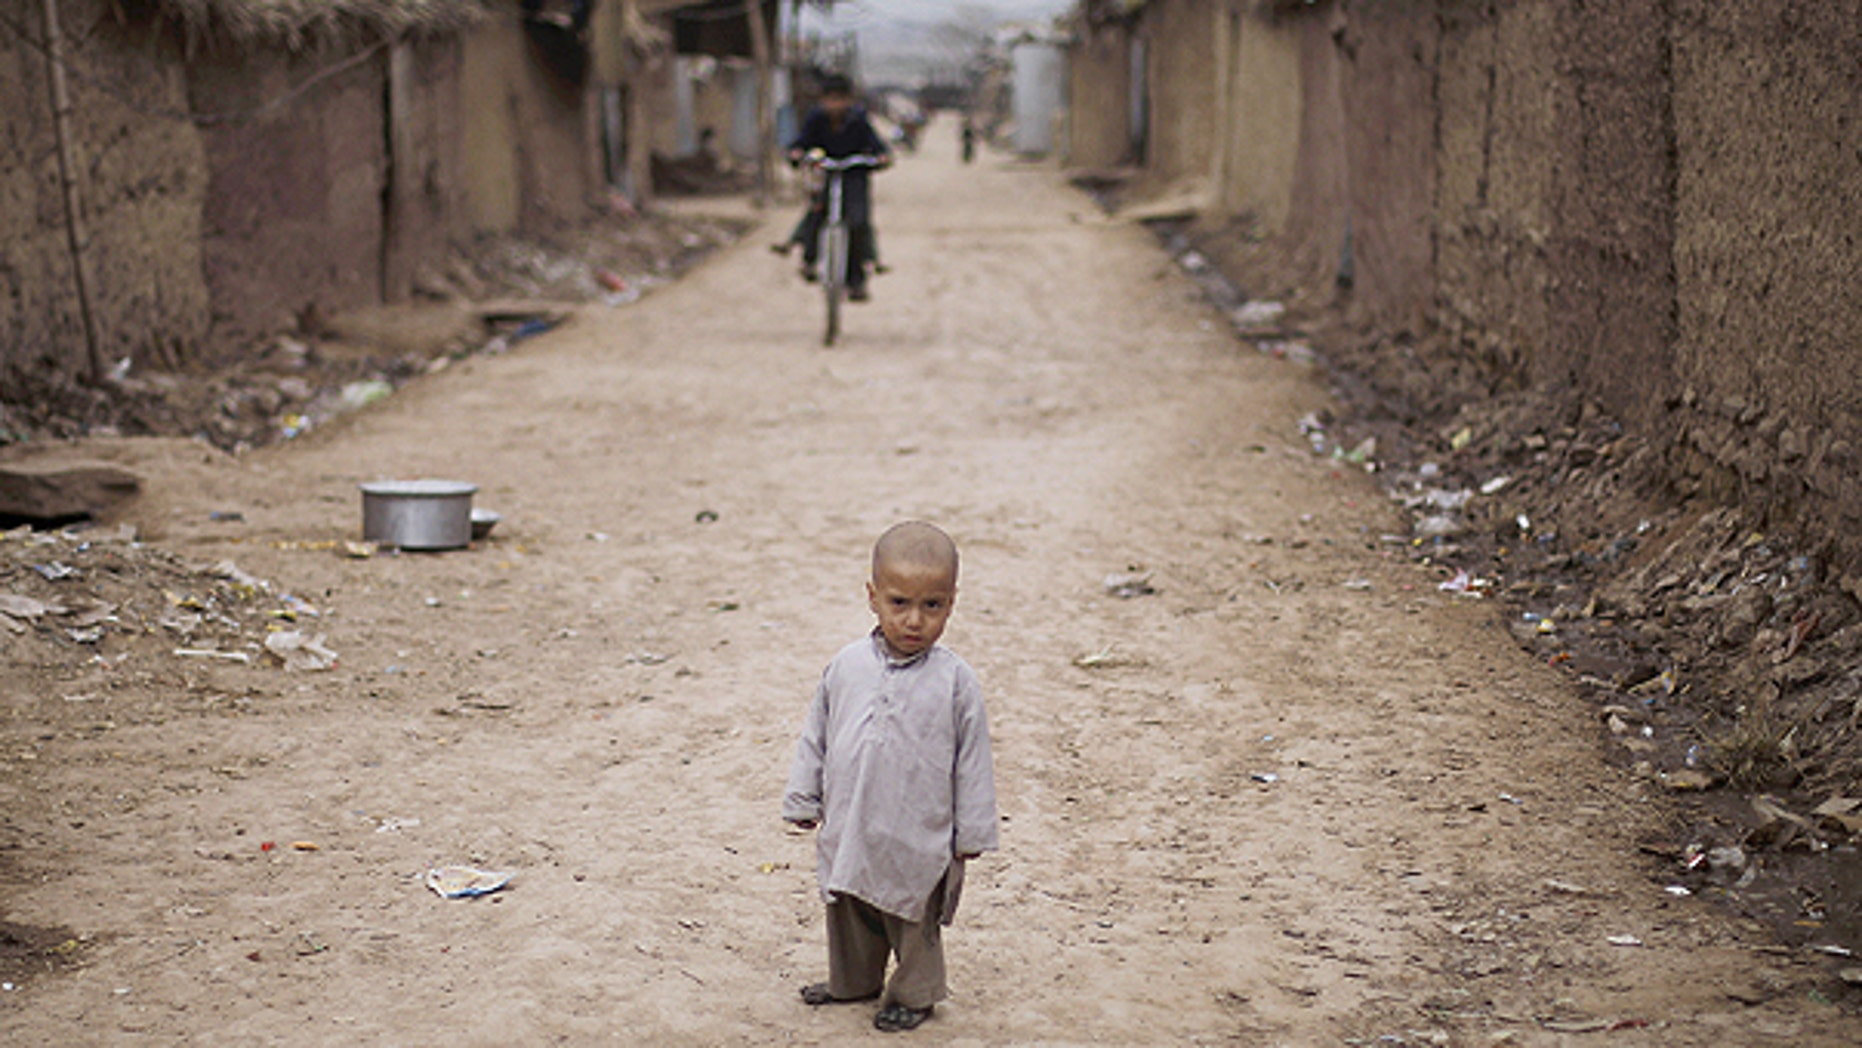 Feb. 3: A young Afghan refugee boy looks on as he stands in an alley in a slum on the outskirts of Islamabad, Pakistan.